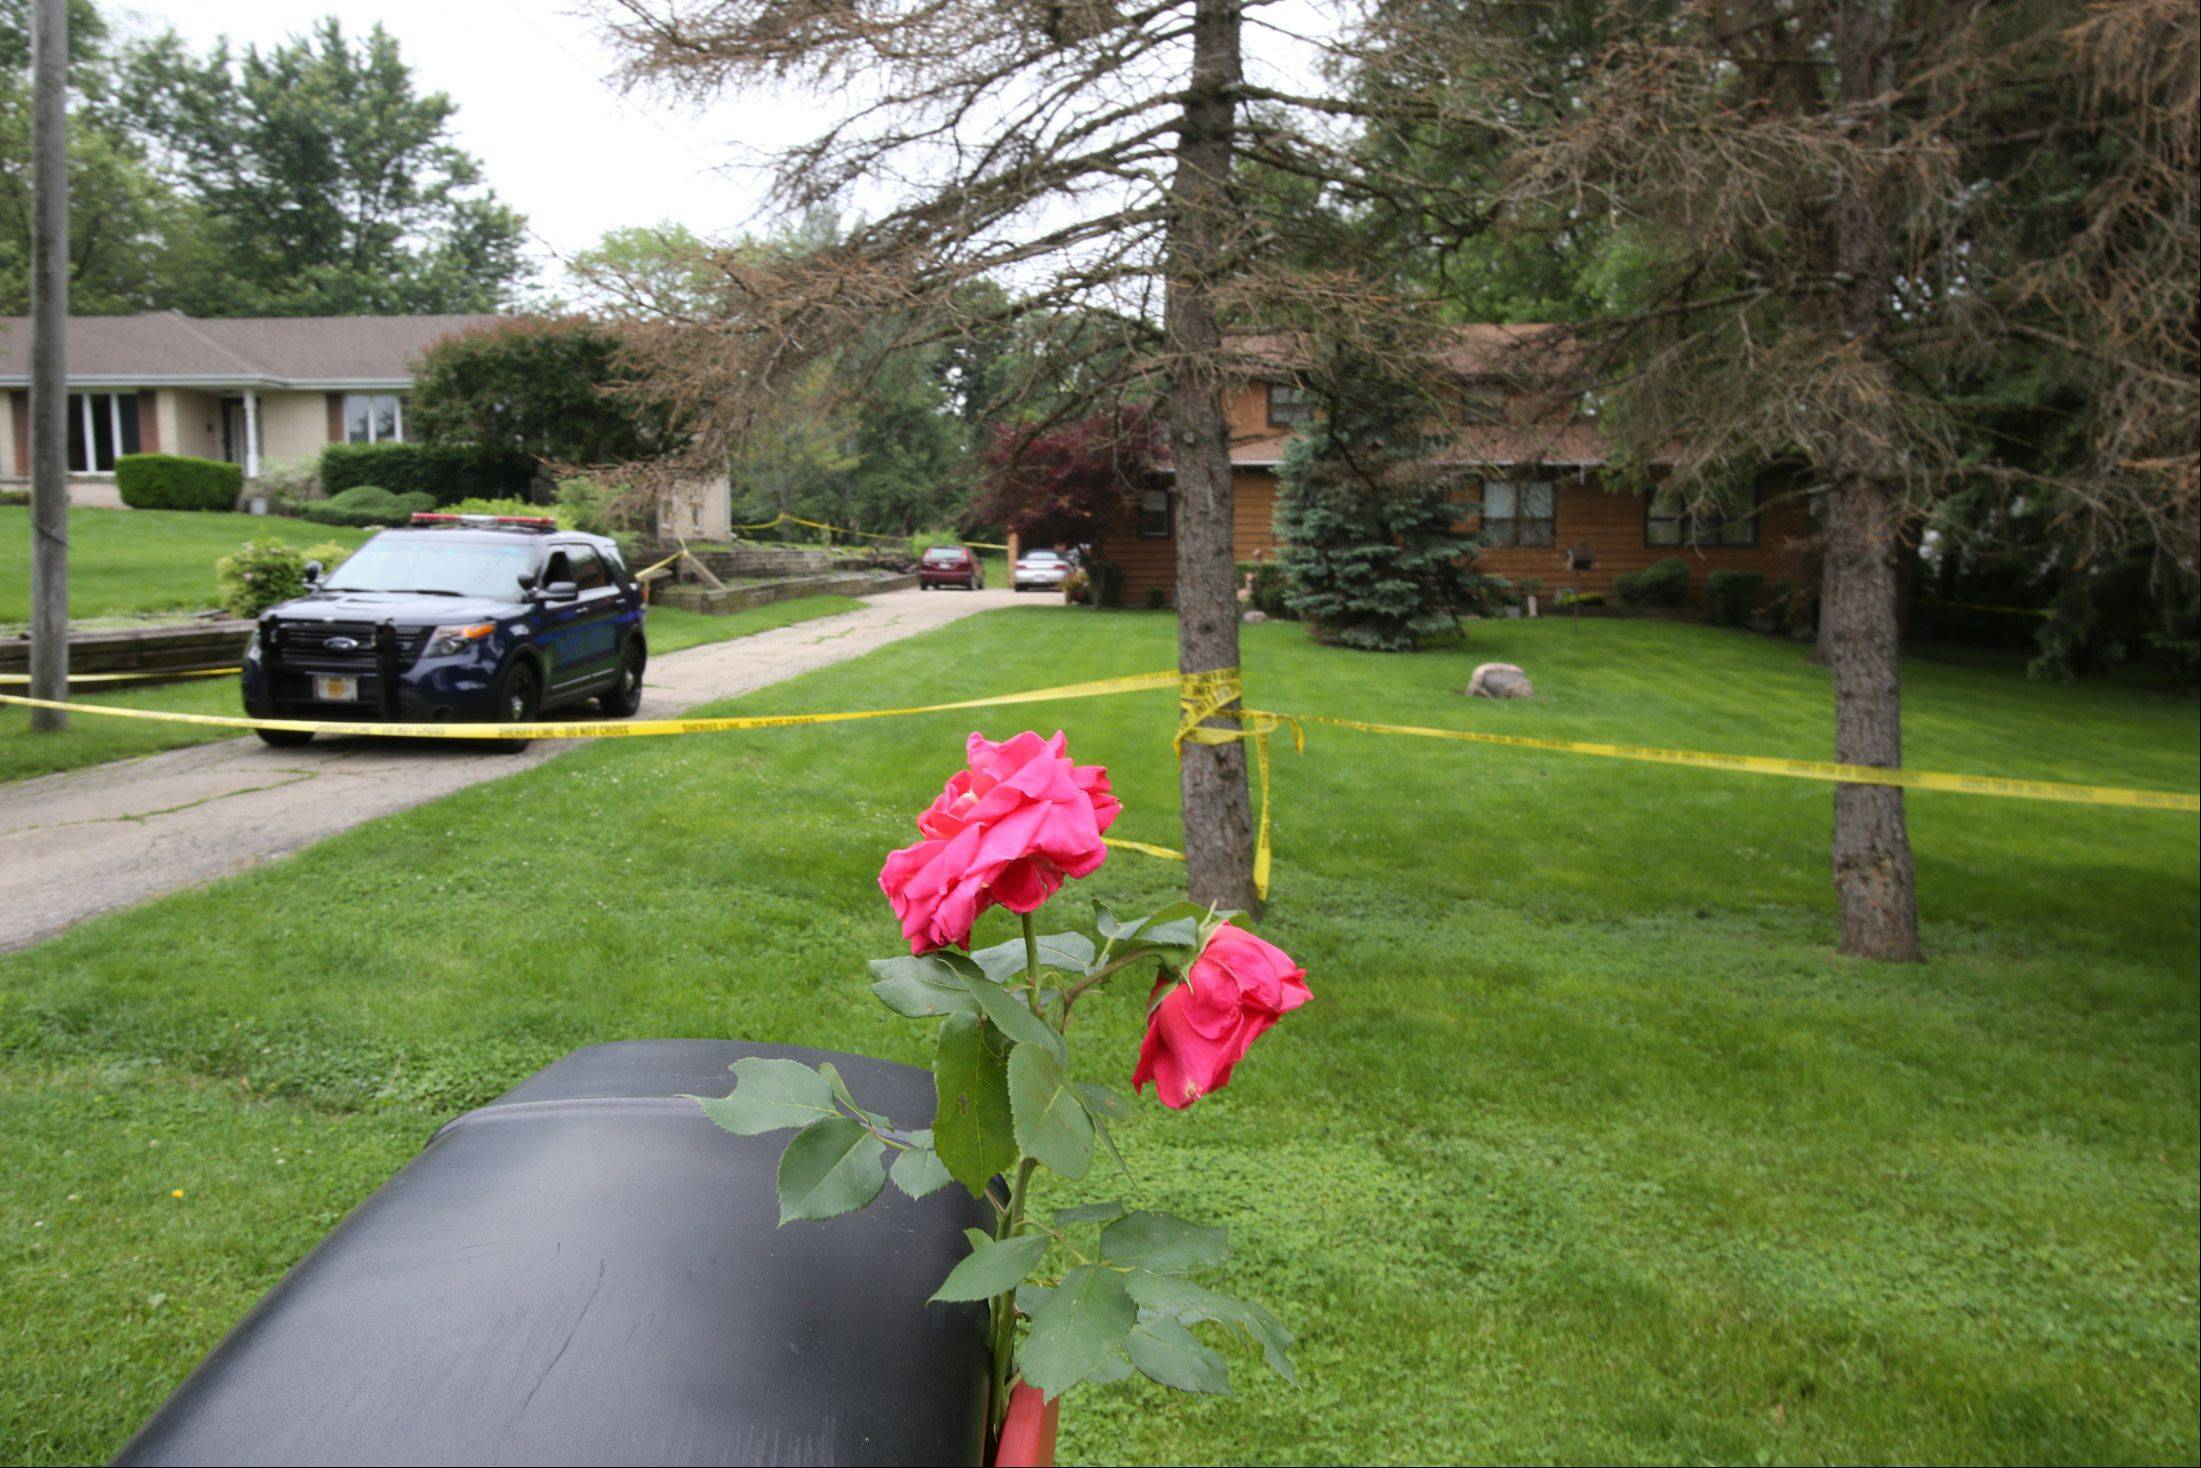 An investigation is ongoing after four bodies were found Tuesday at a house on Oldfield Road near Darien.